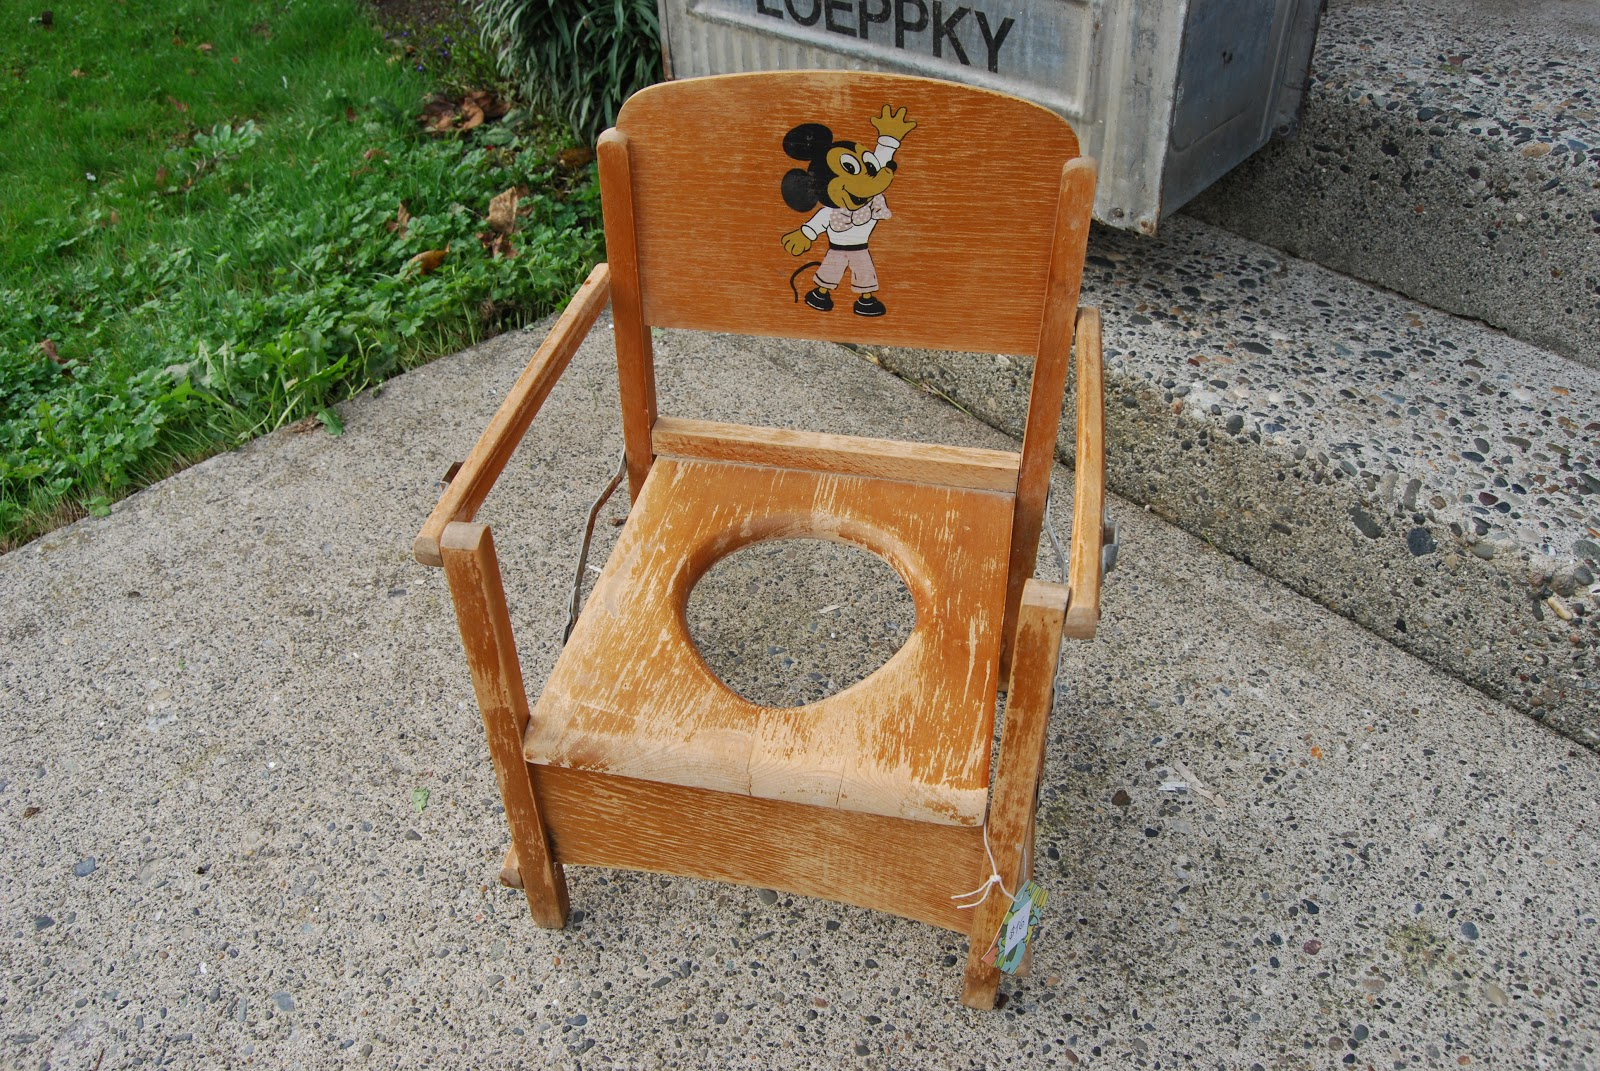 Best Potty Chair Small Round Cushions Lucky And Lou 39s Second Hand News Folding Wooden